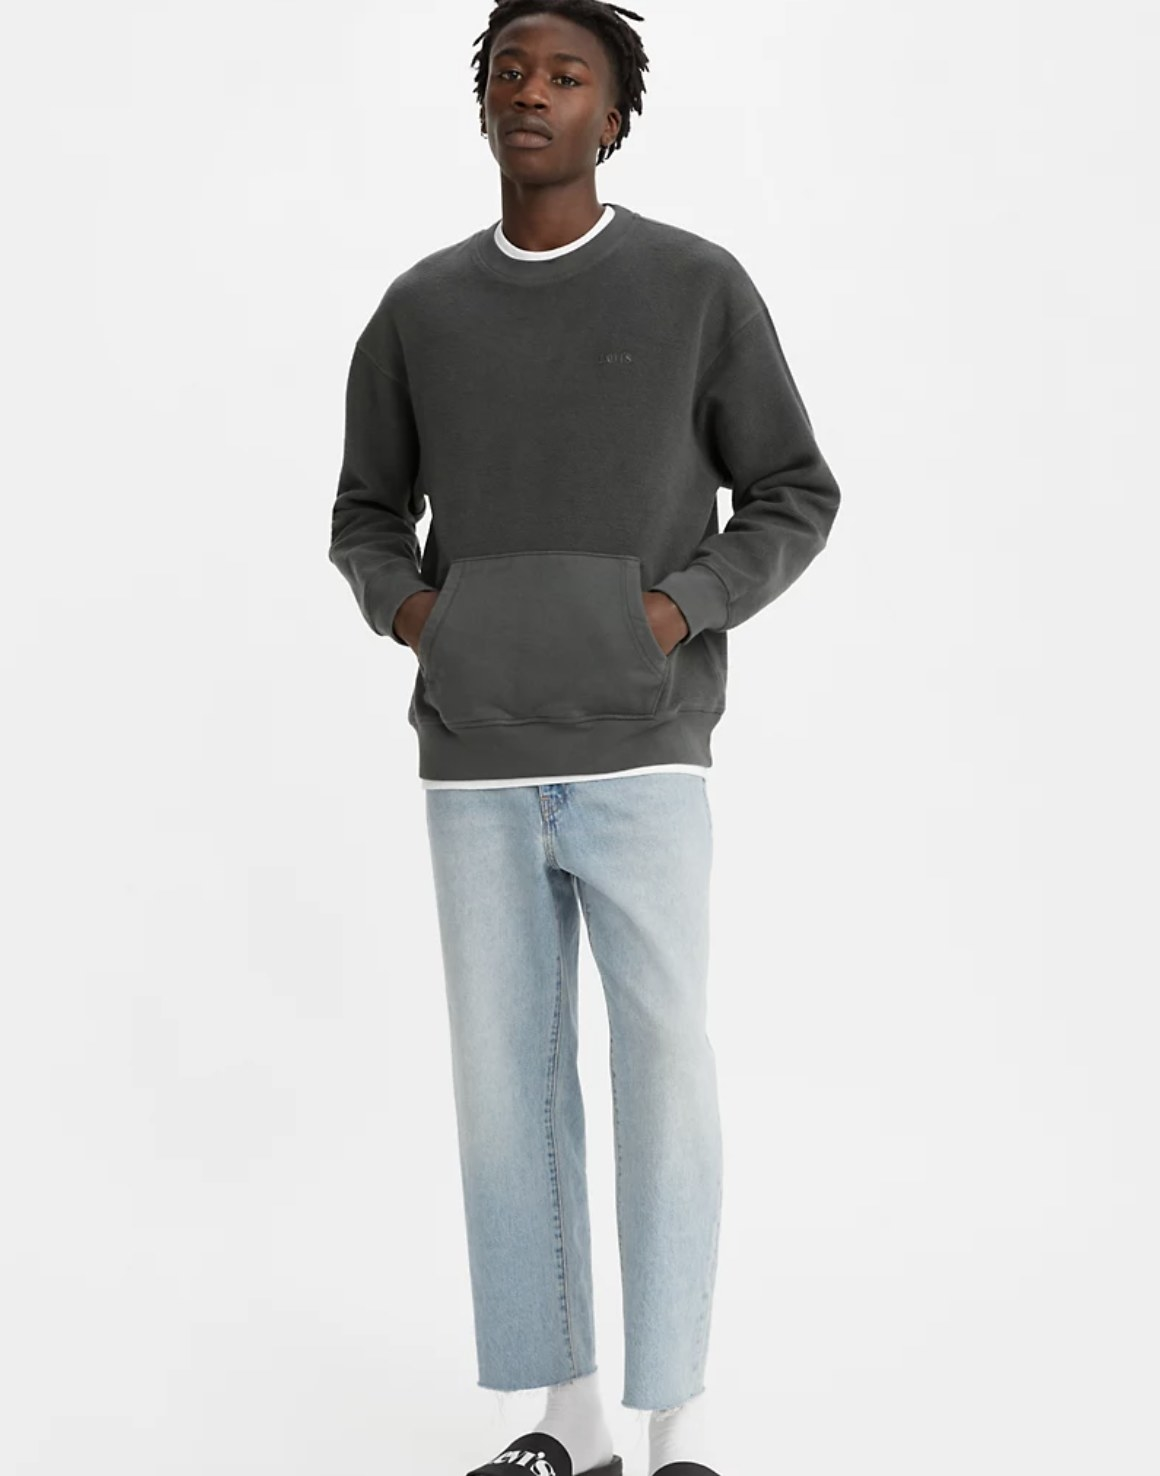 Model is wearing light wash jeans and a dark grey crewneck with a front pocket